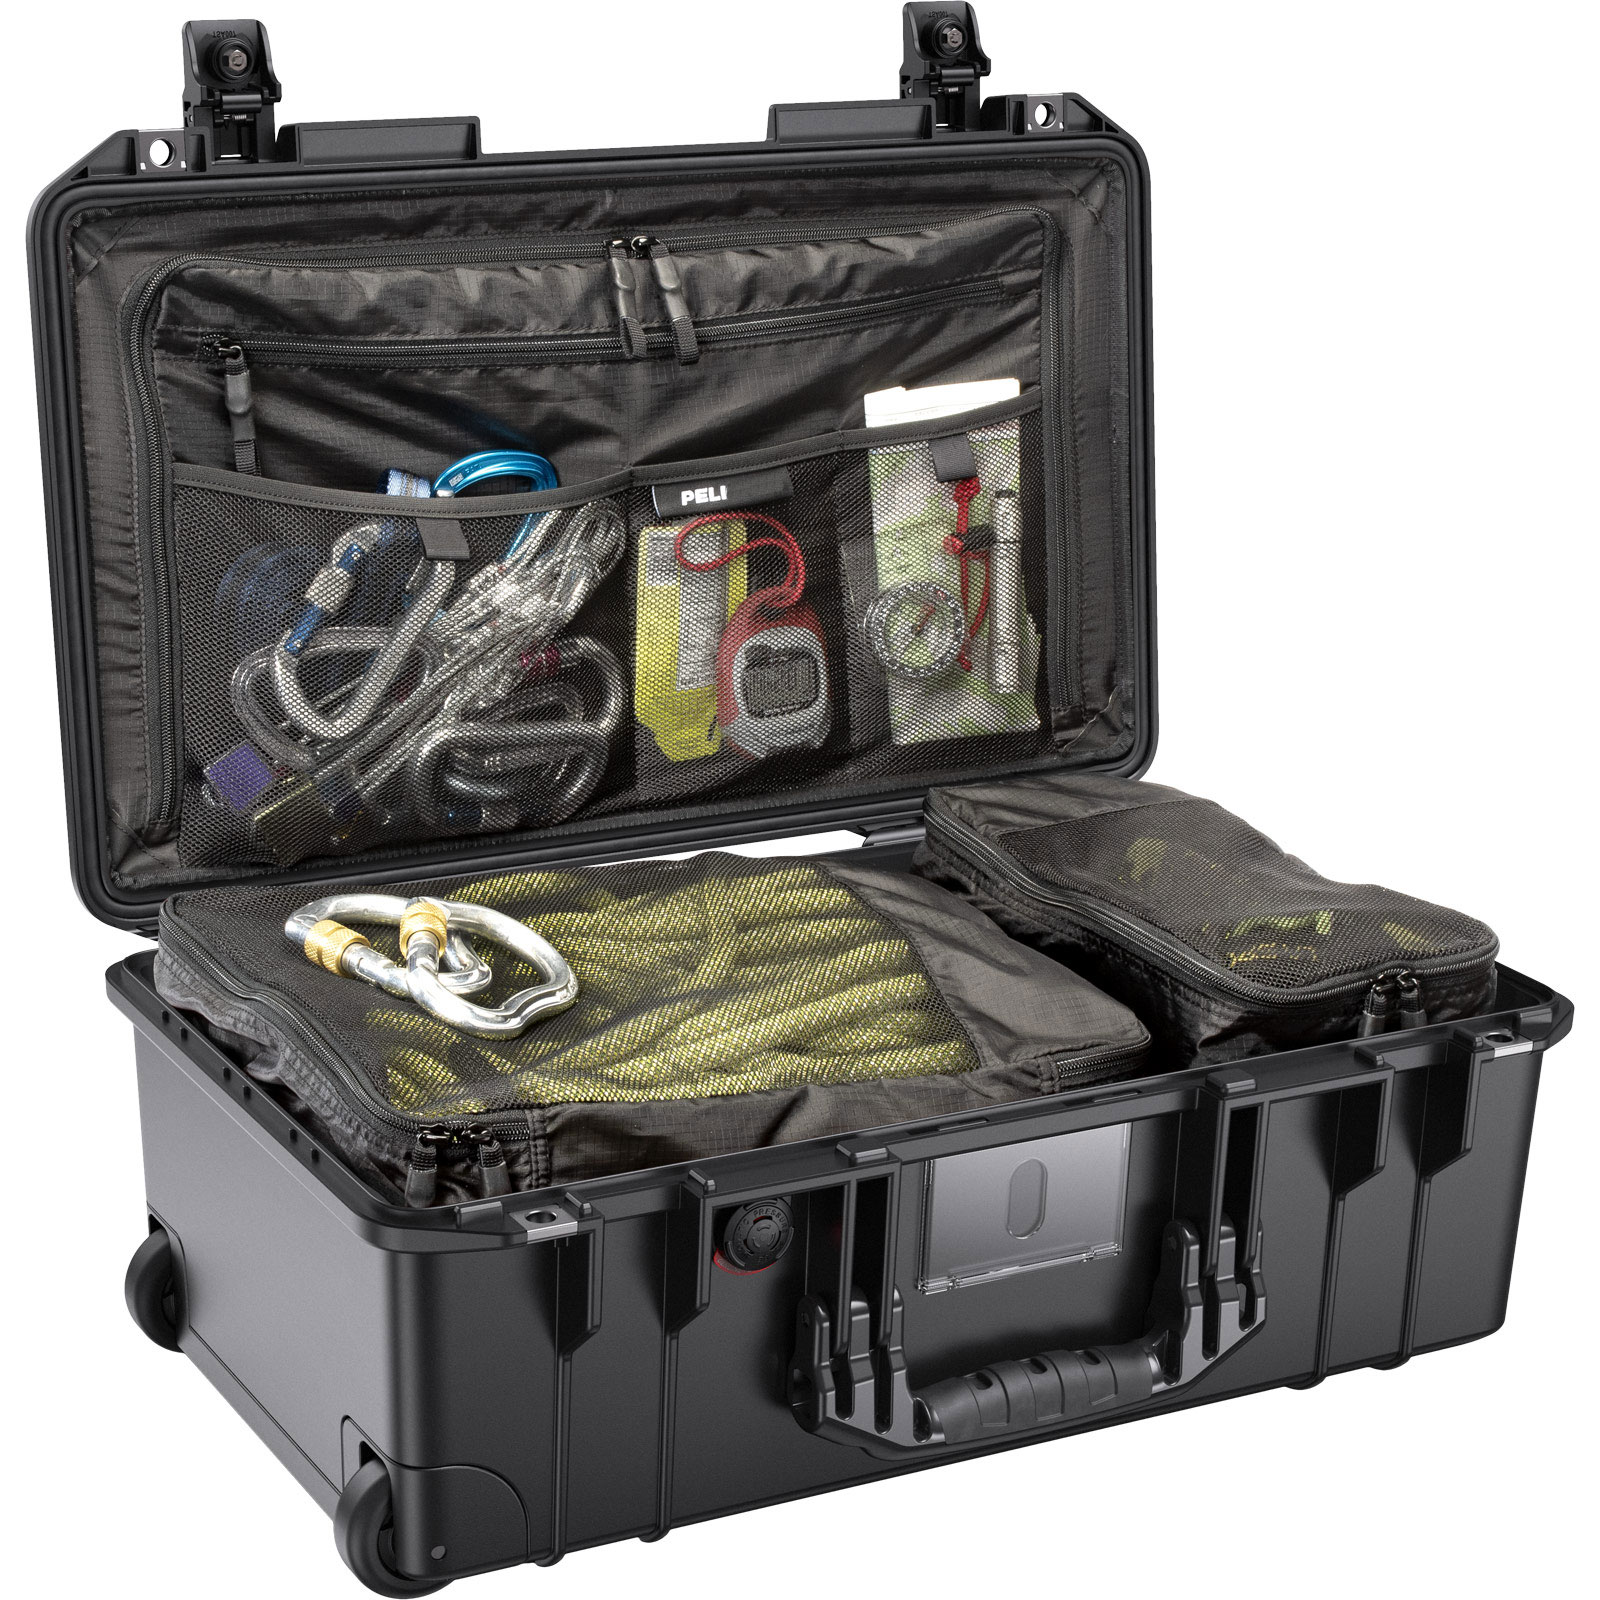 peli 1535 black tsa lock luggage case